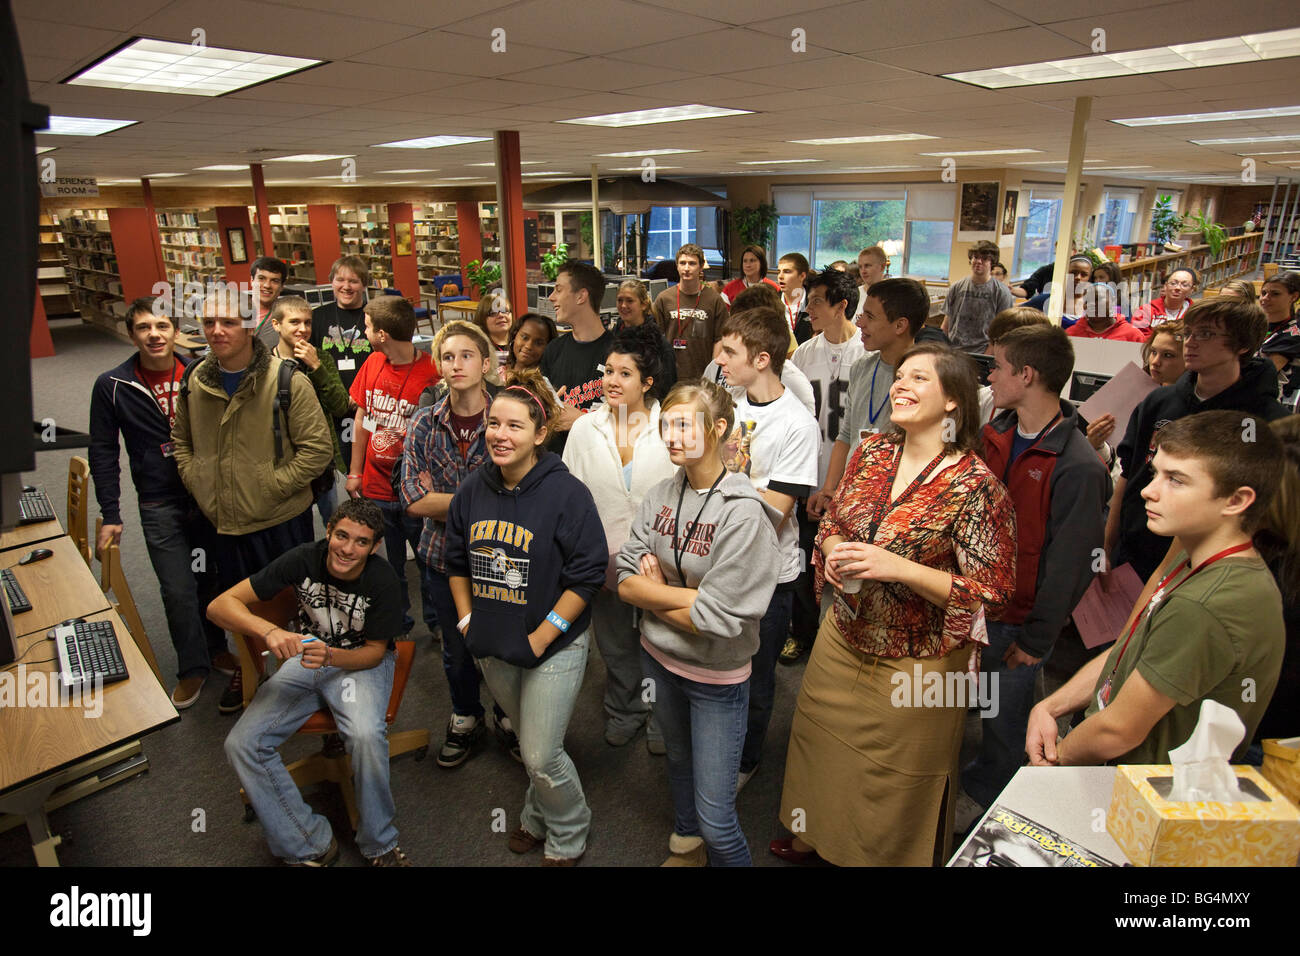 Students Watch Video Announcements on TV in High School Library - Stock Image